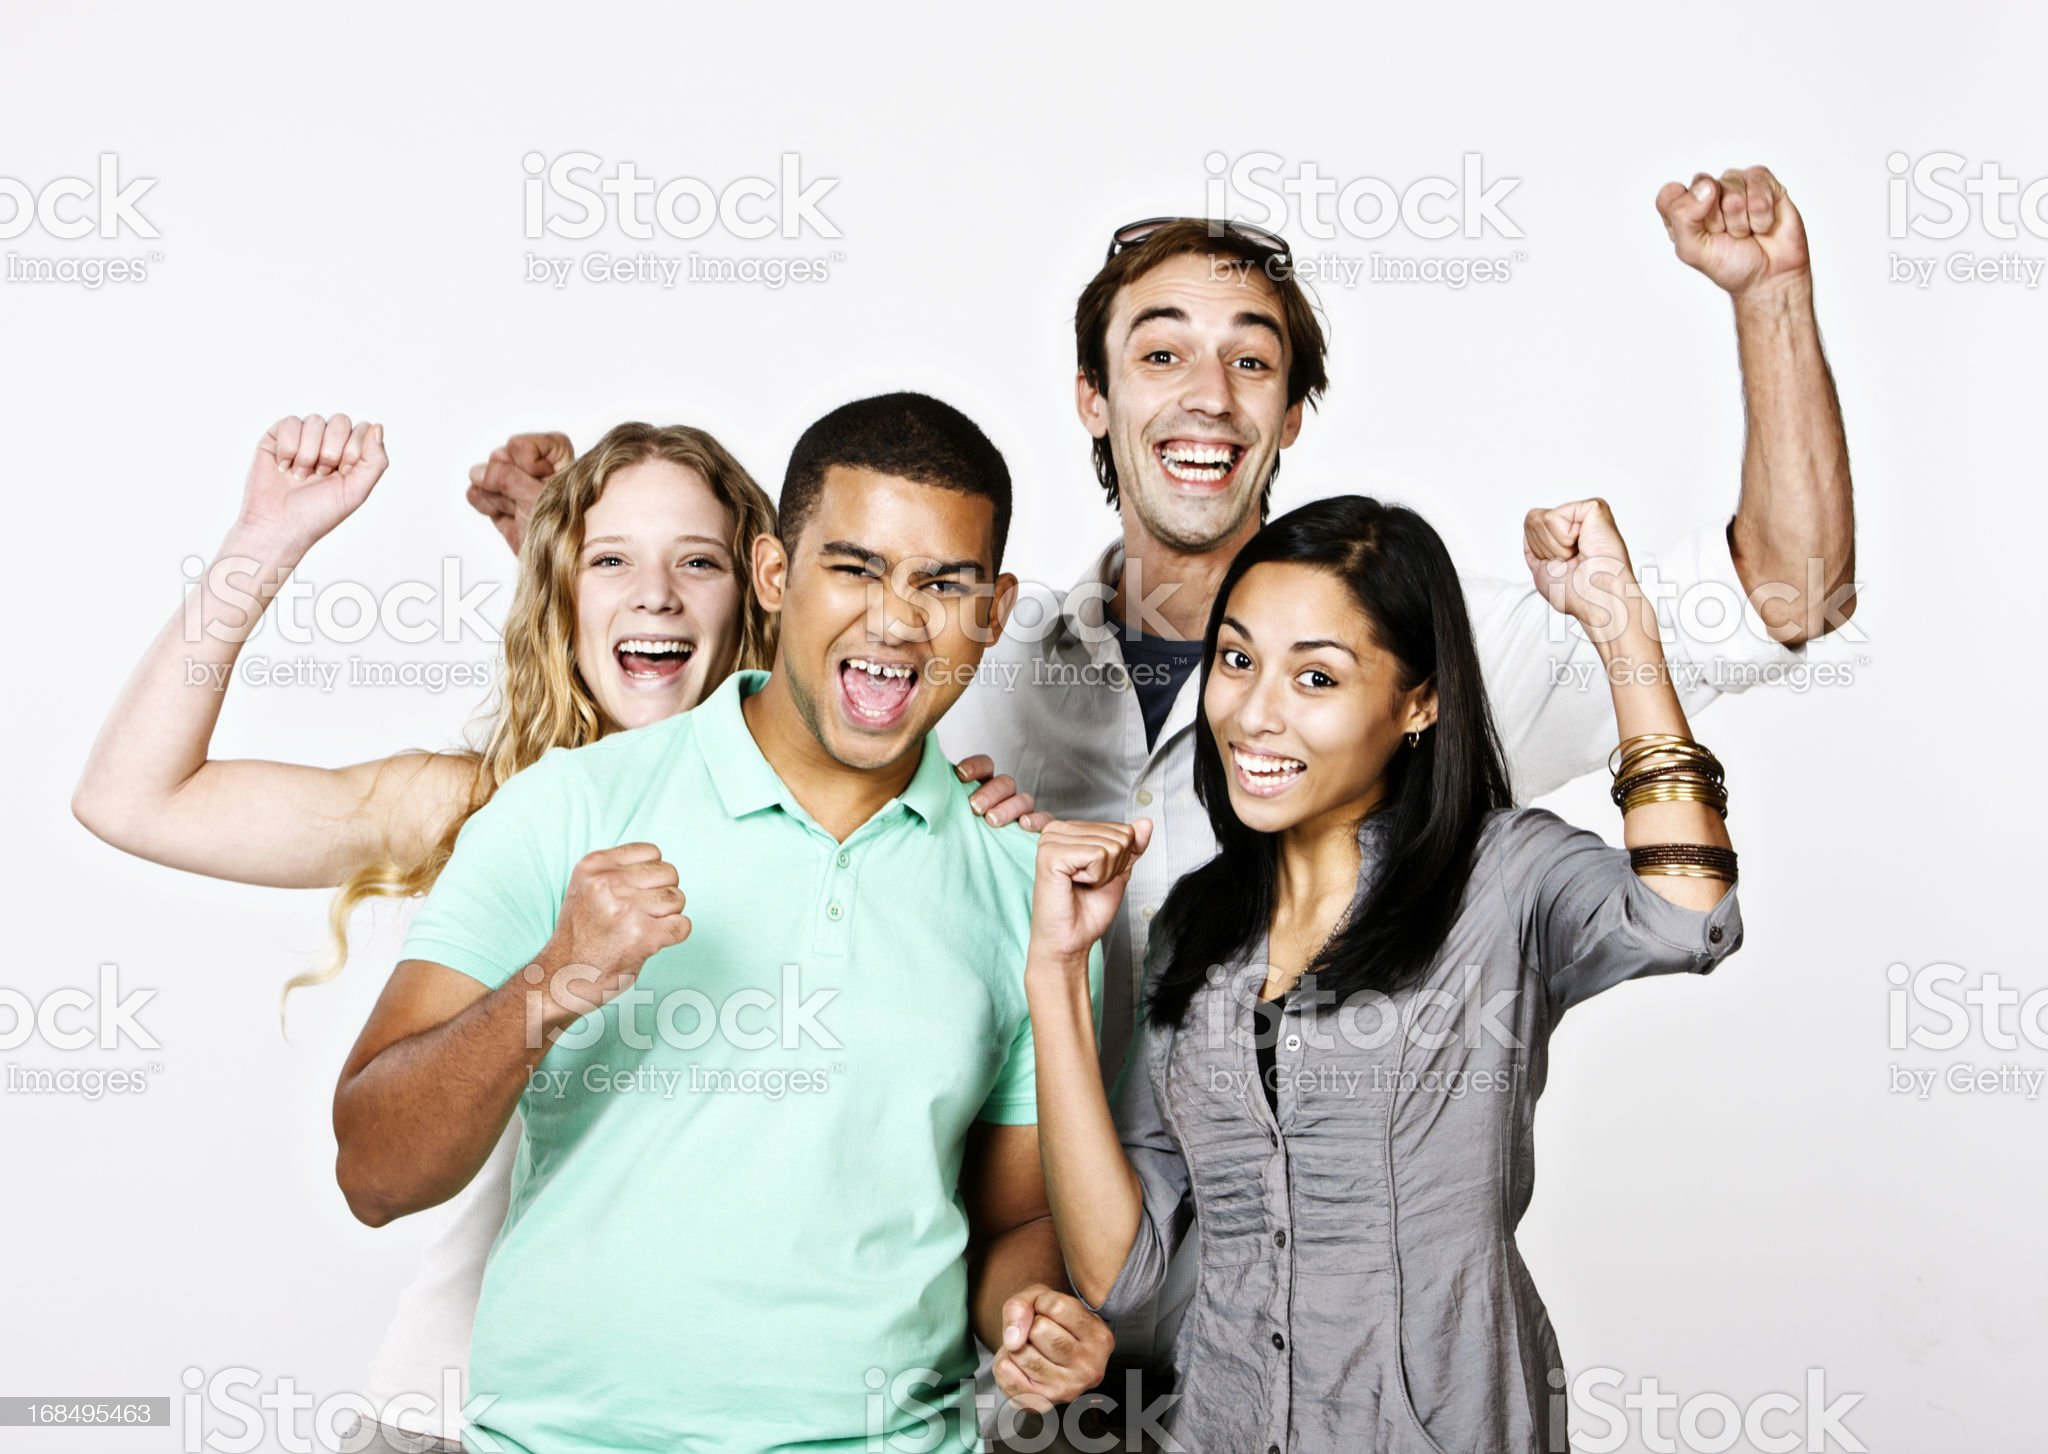 Four excited energetic fans wave and shout supporting their side royalty-free stock photo